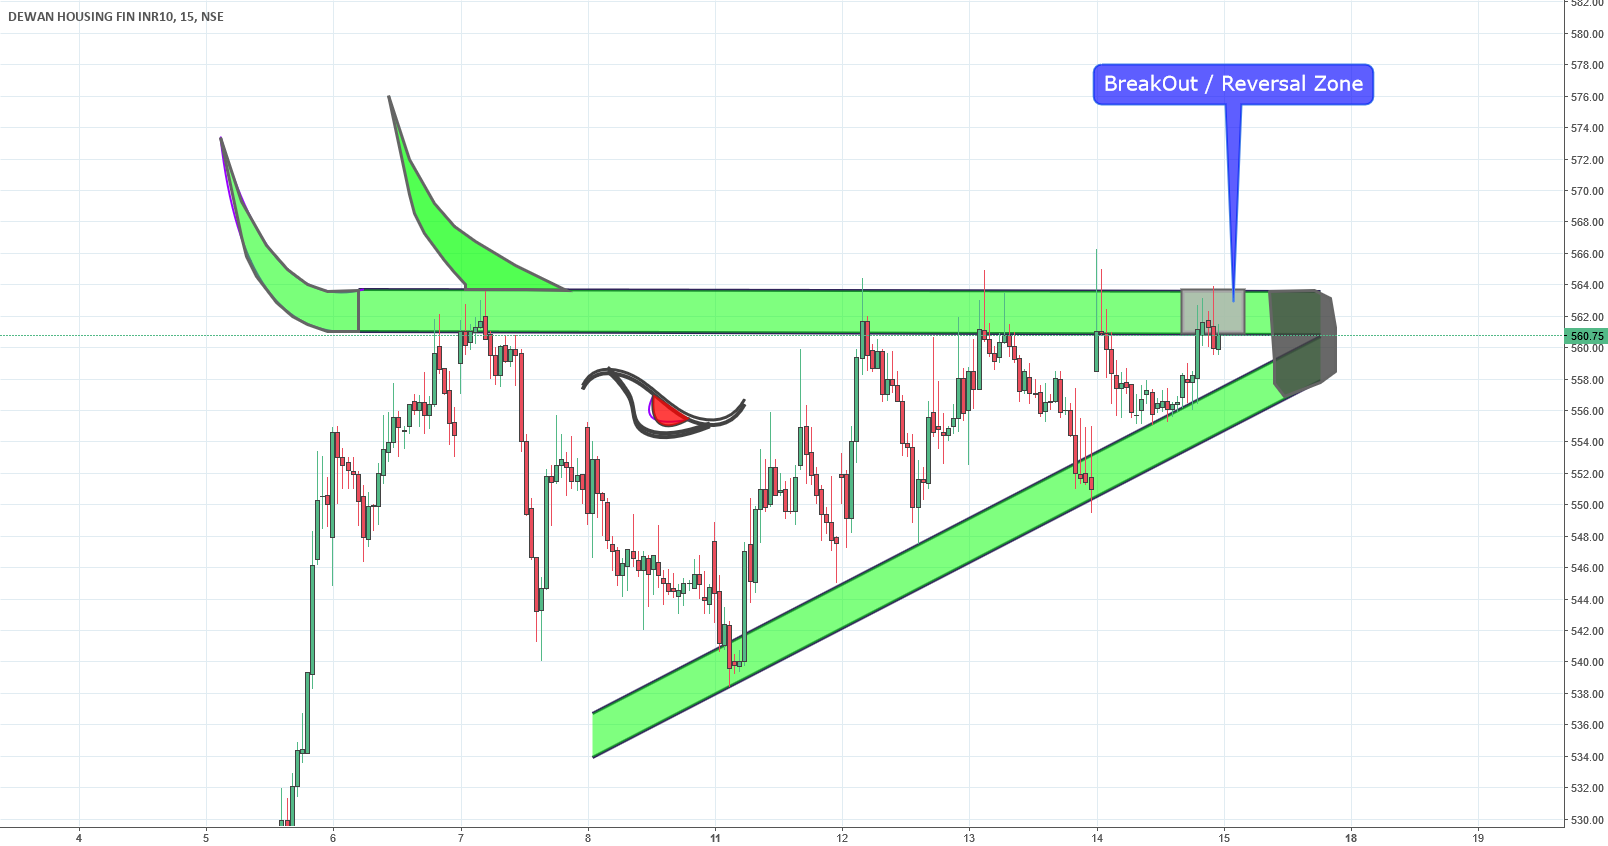 DHFL Ascending  Triangle Breakout